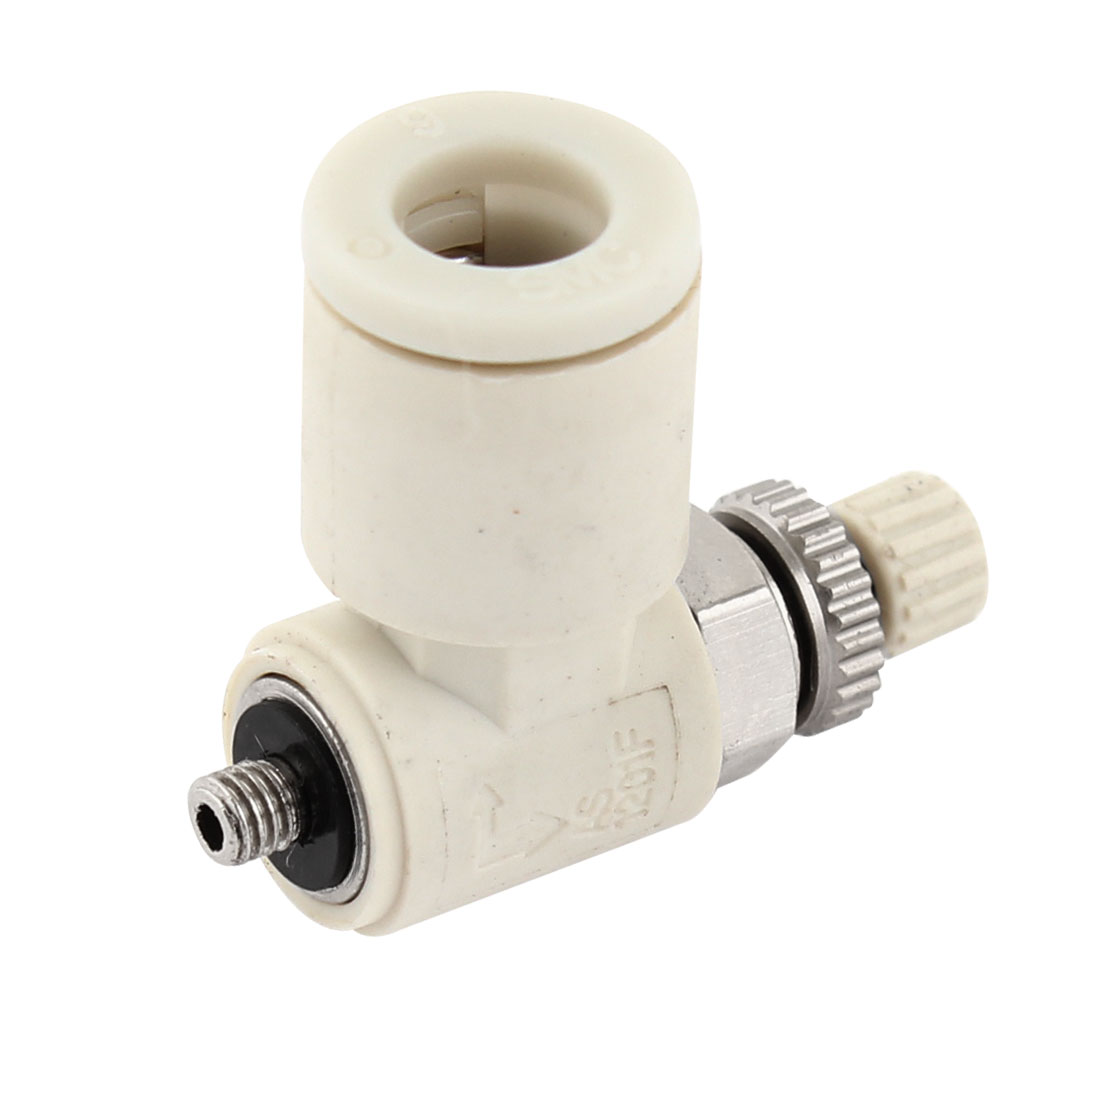 6mm Inner Dia Plastic Air Tube Push in Connector Flow Control Fitting